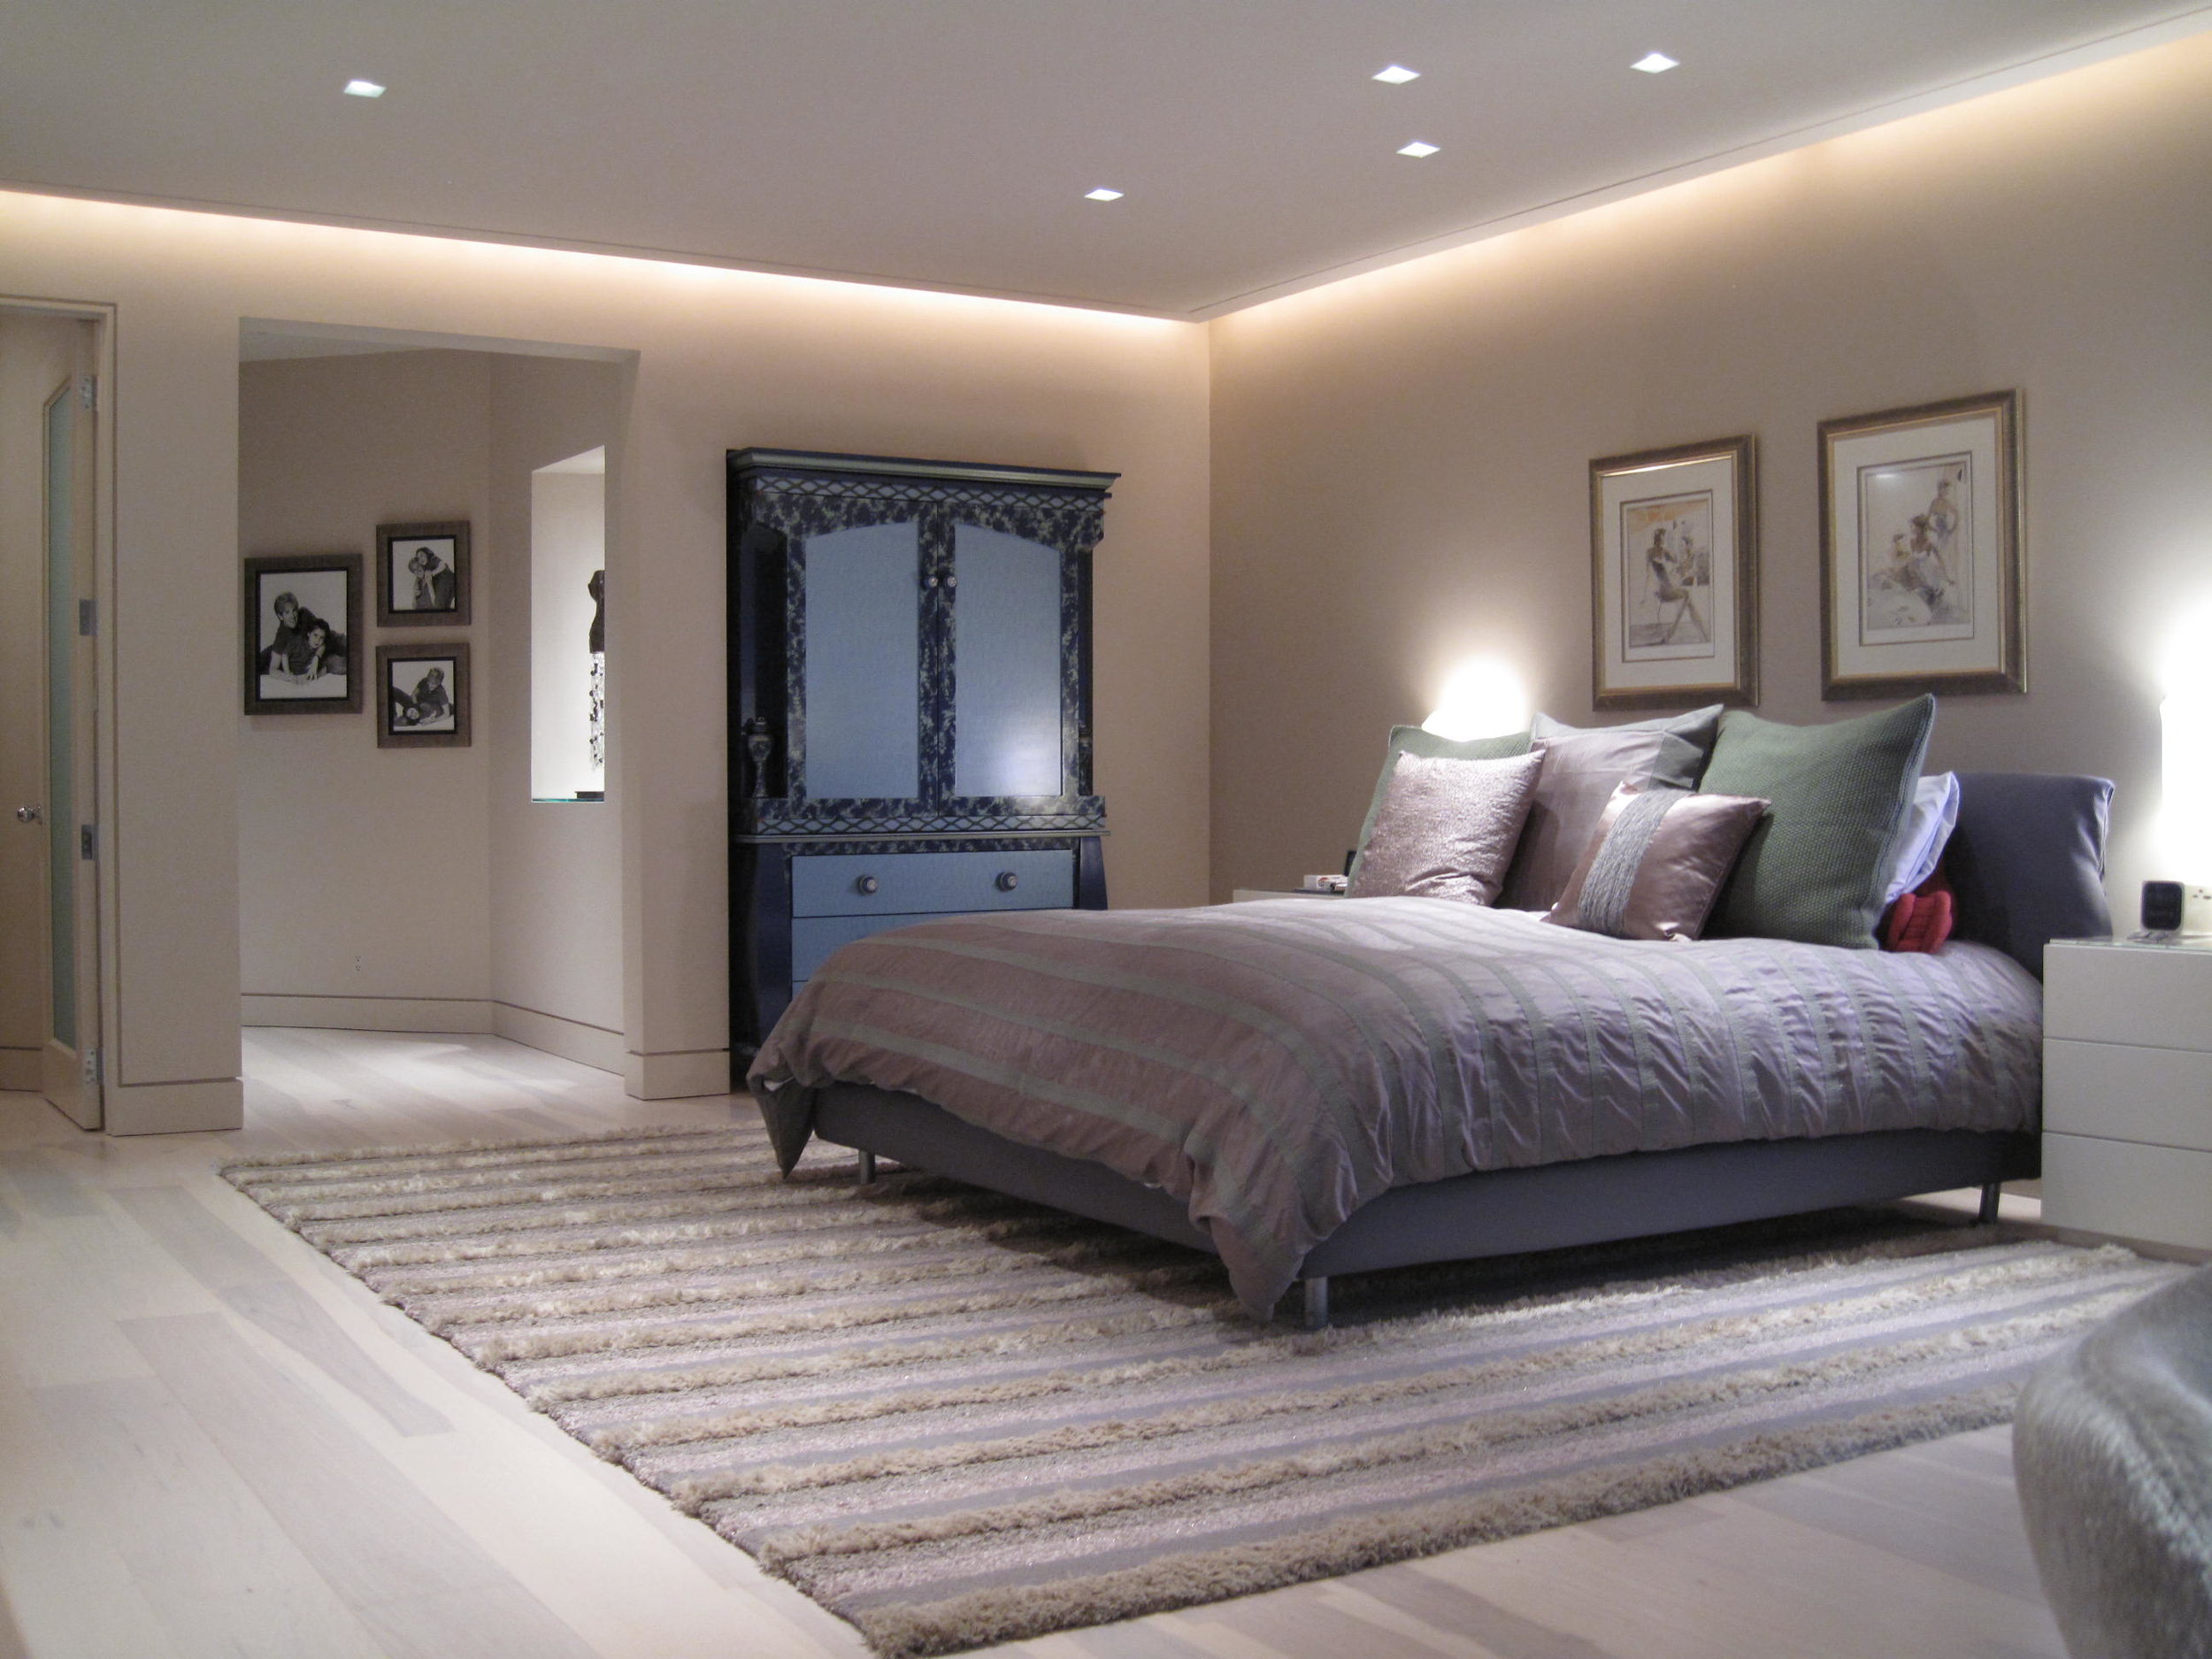 Spacious bedroom design with framed painting on the wall